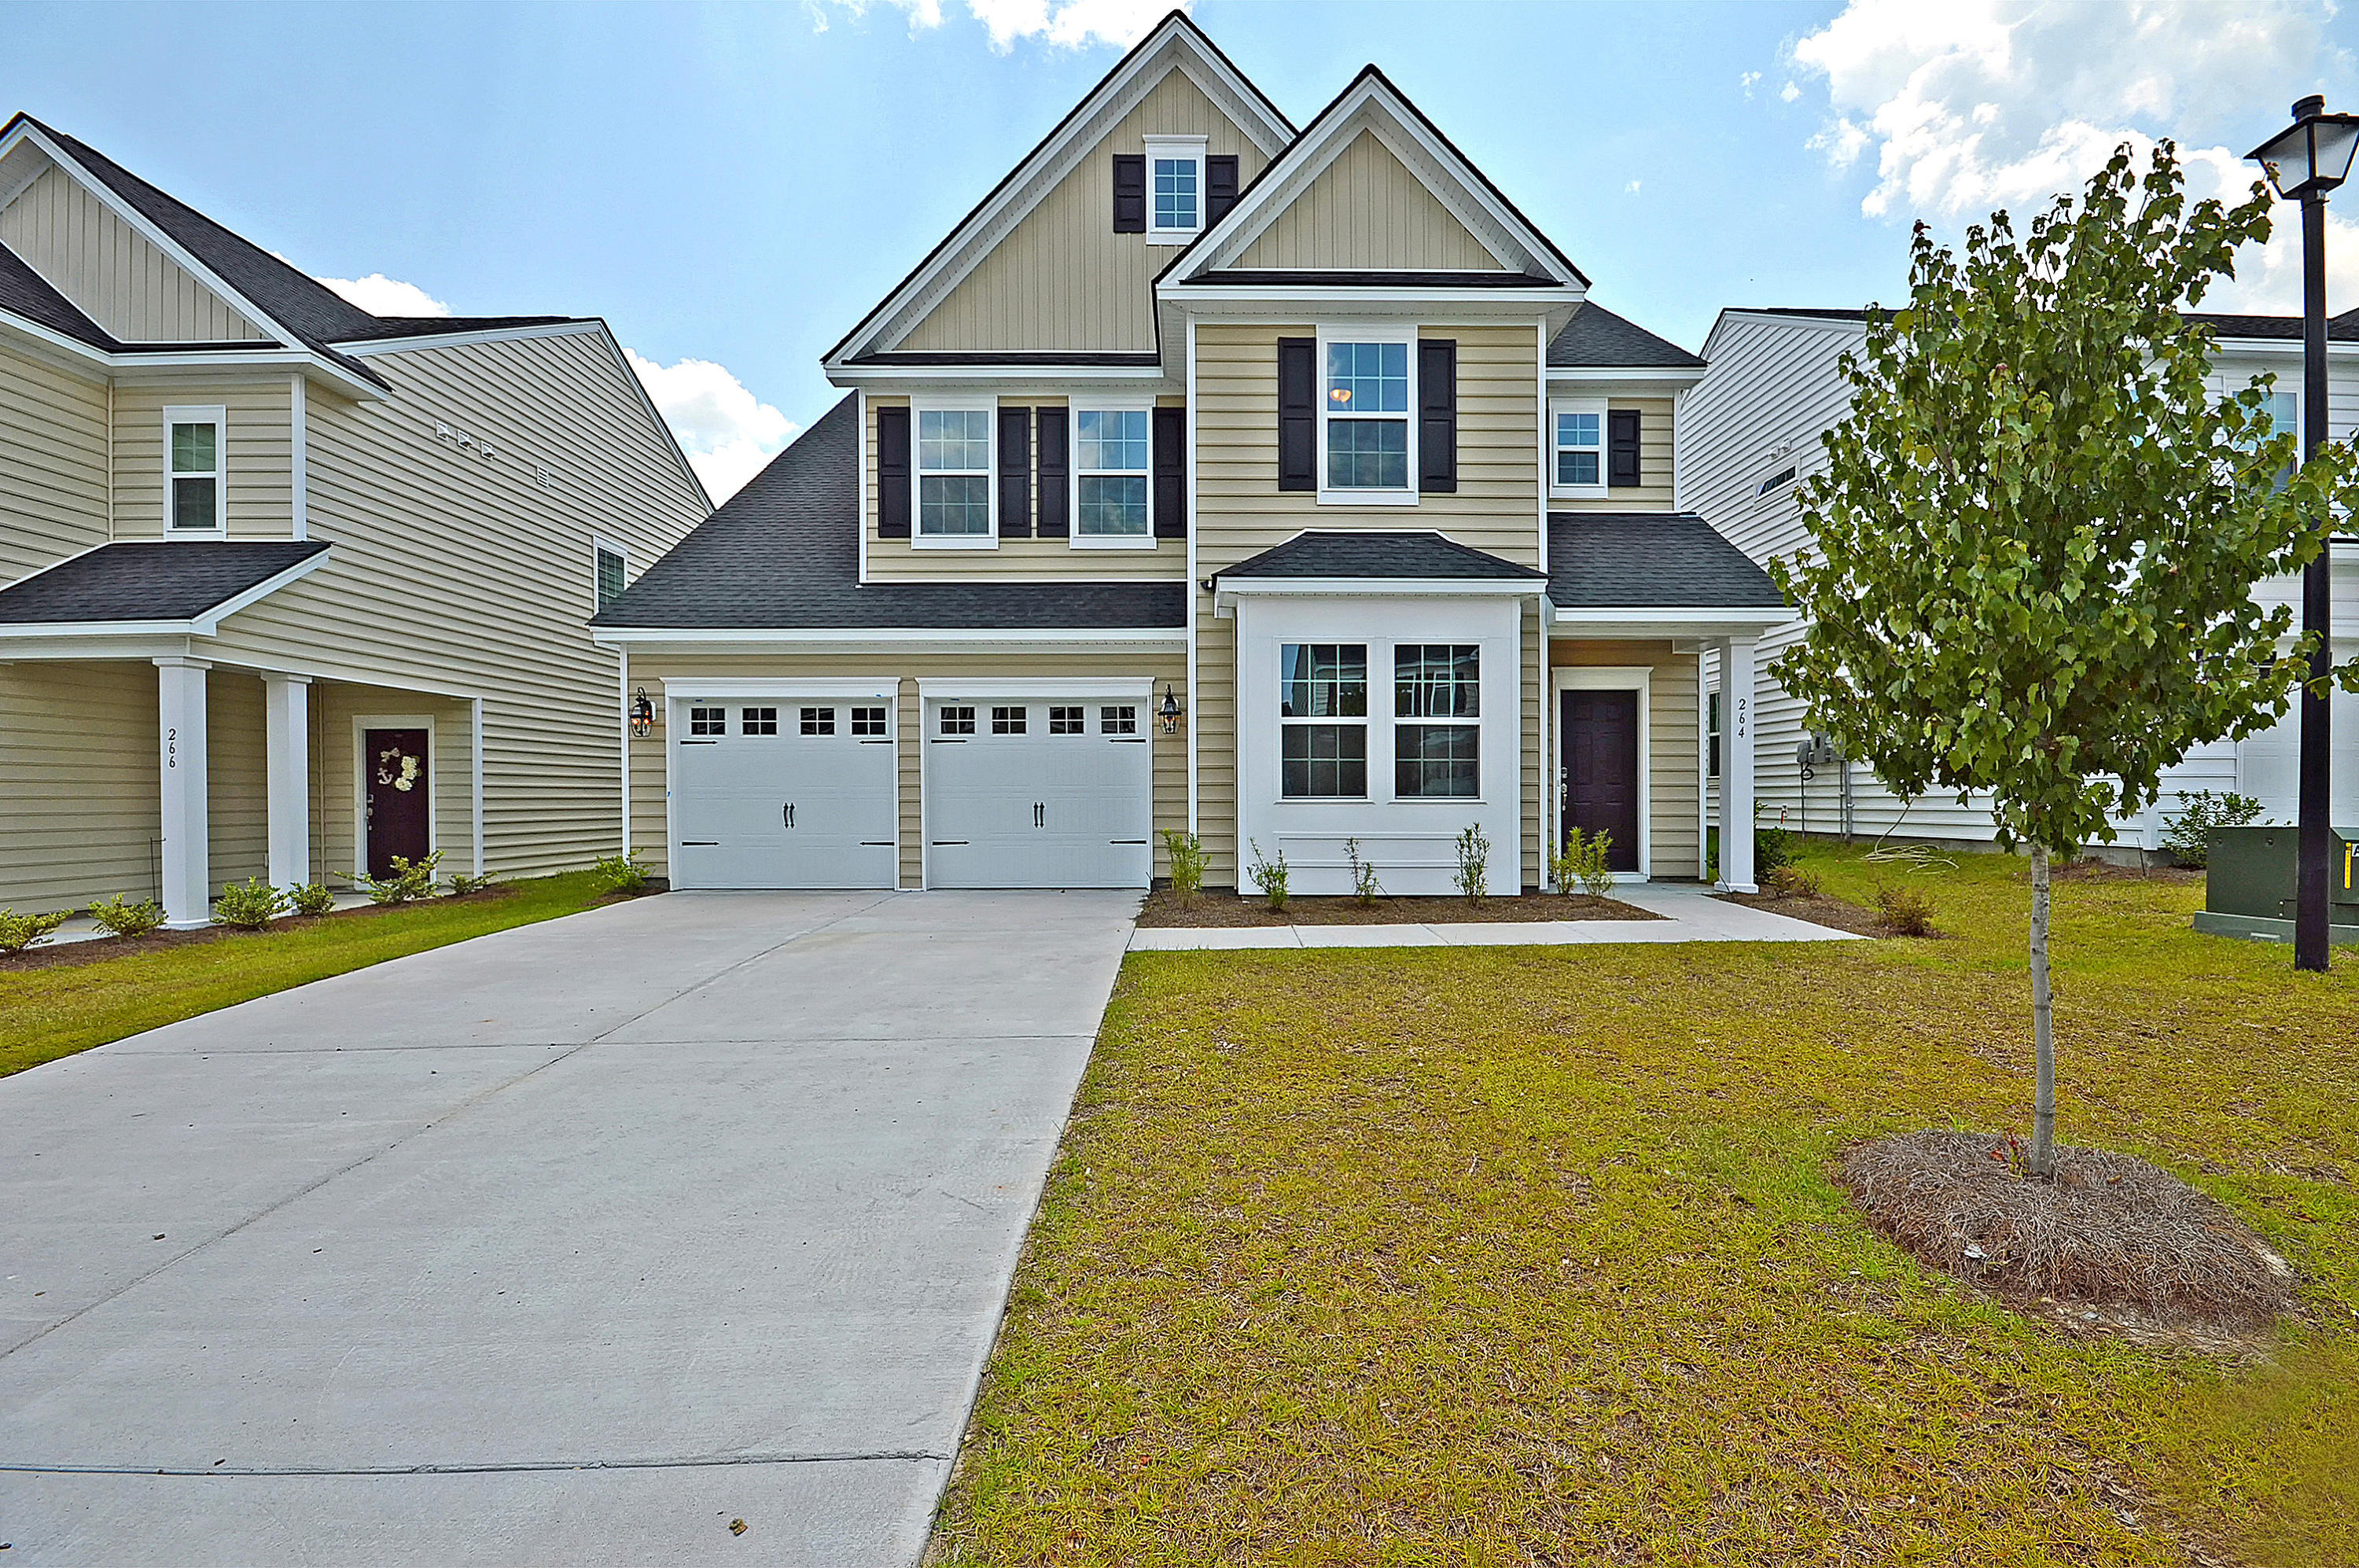 154 Daniels Creek Circle Goose Creek, Sc 29445